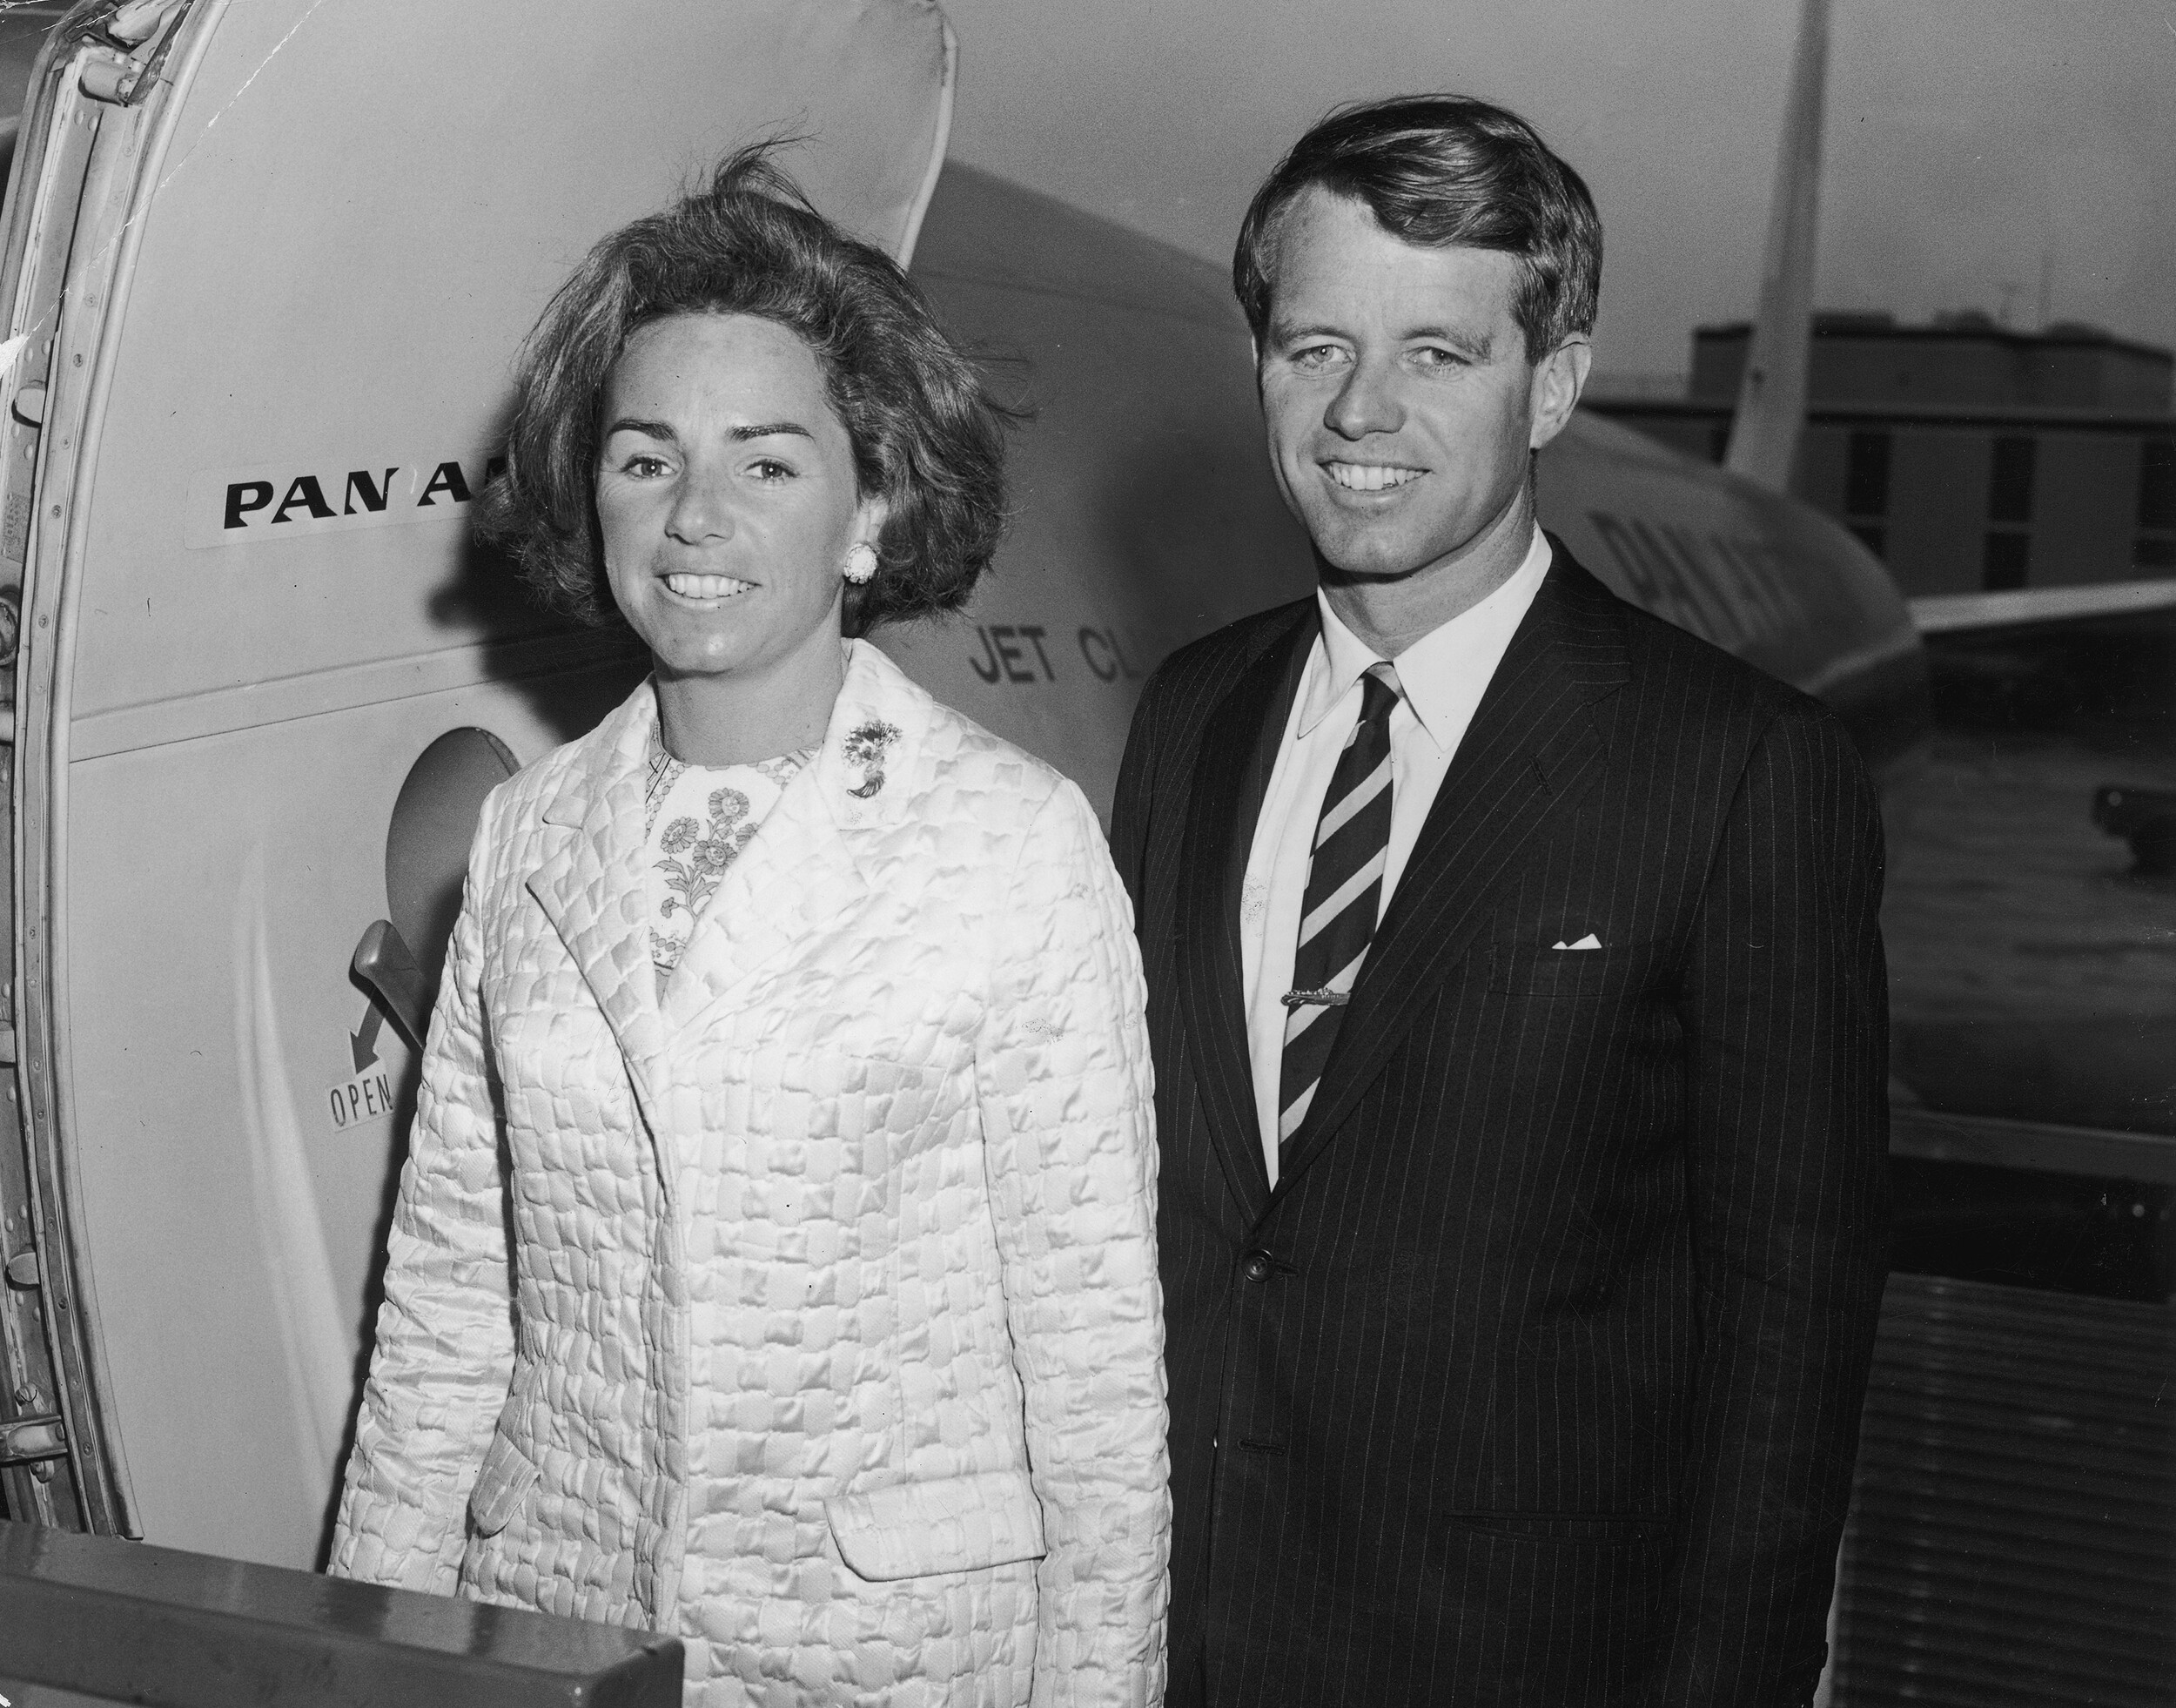 RFK's widow says his assassin 'should not have the opportunity to terrorize again' in statement against parole